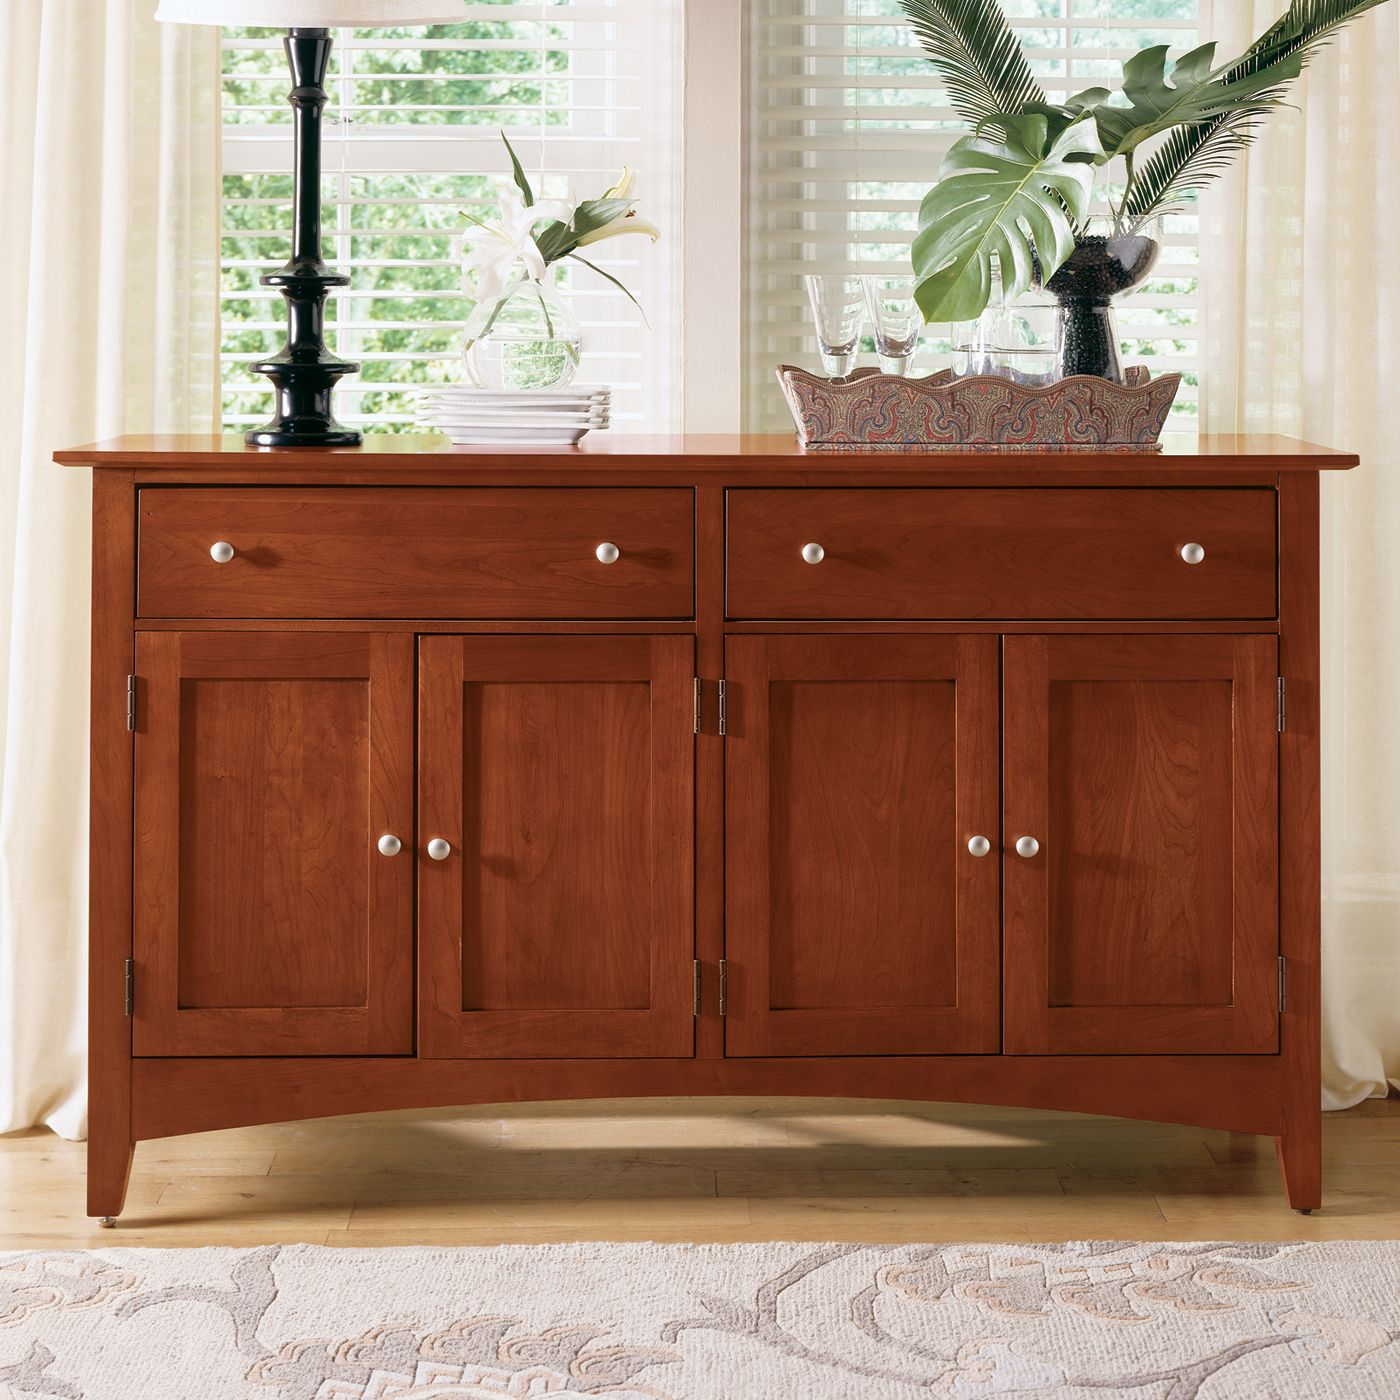 kincaid furniture 43 090 gathering house sideboard satin cherry